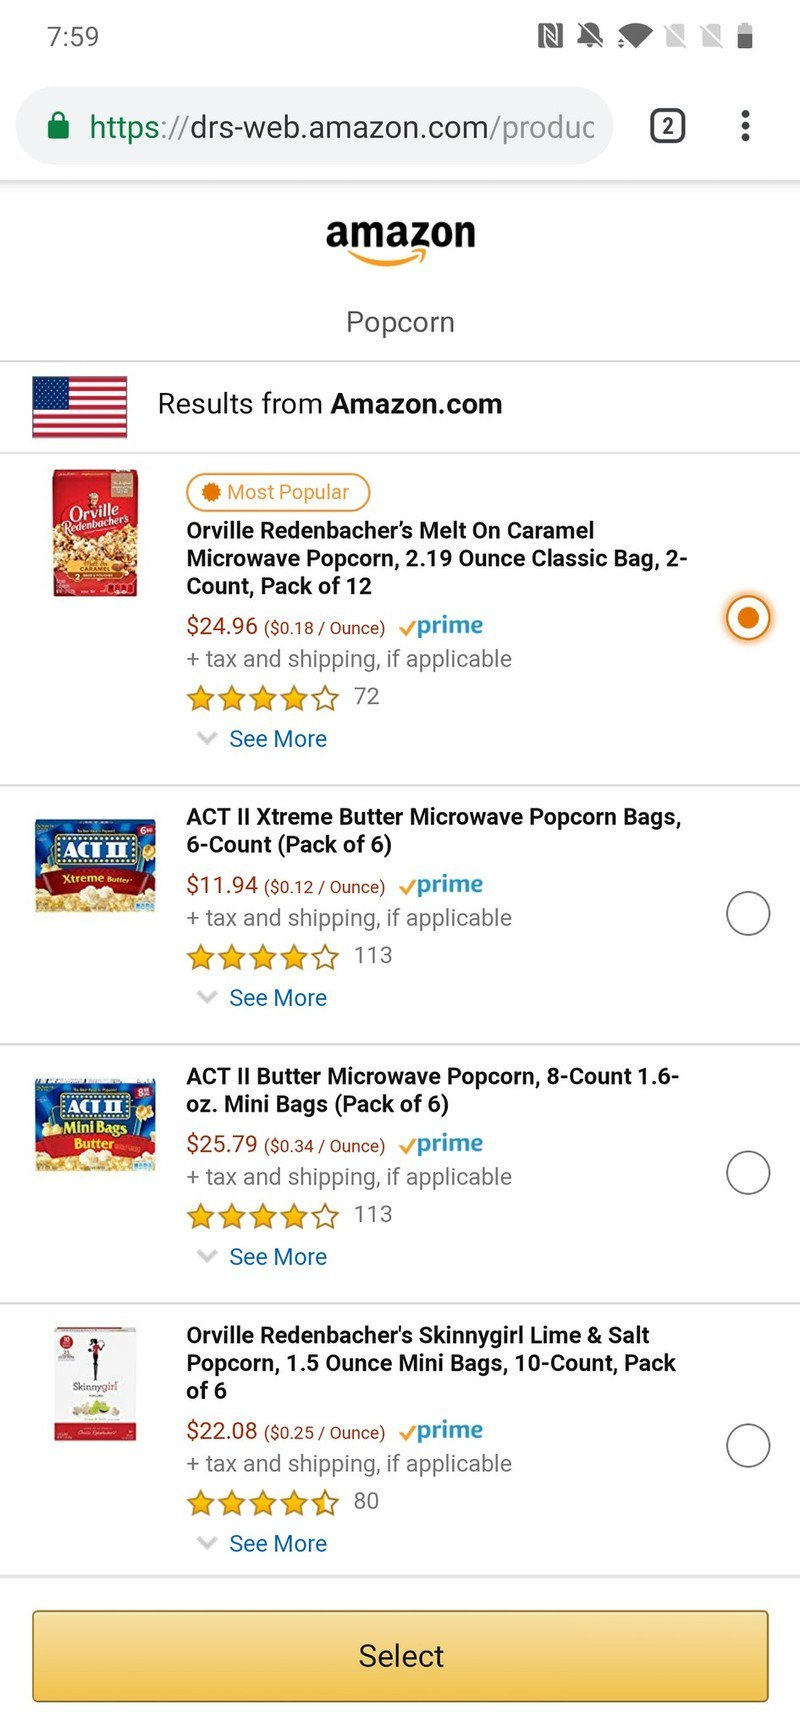 amazon-microwave-popcorn-how-to-6.jpg?it